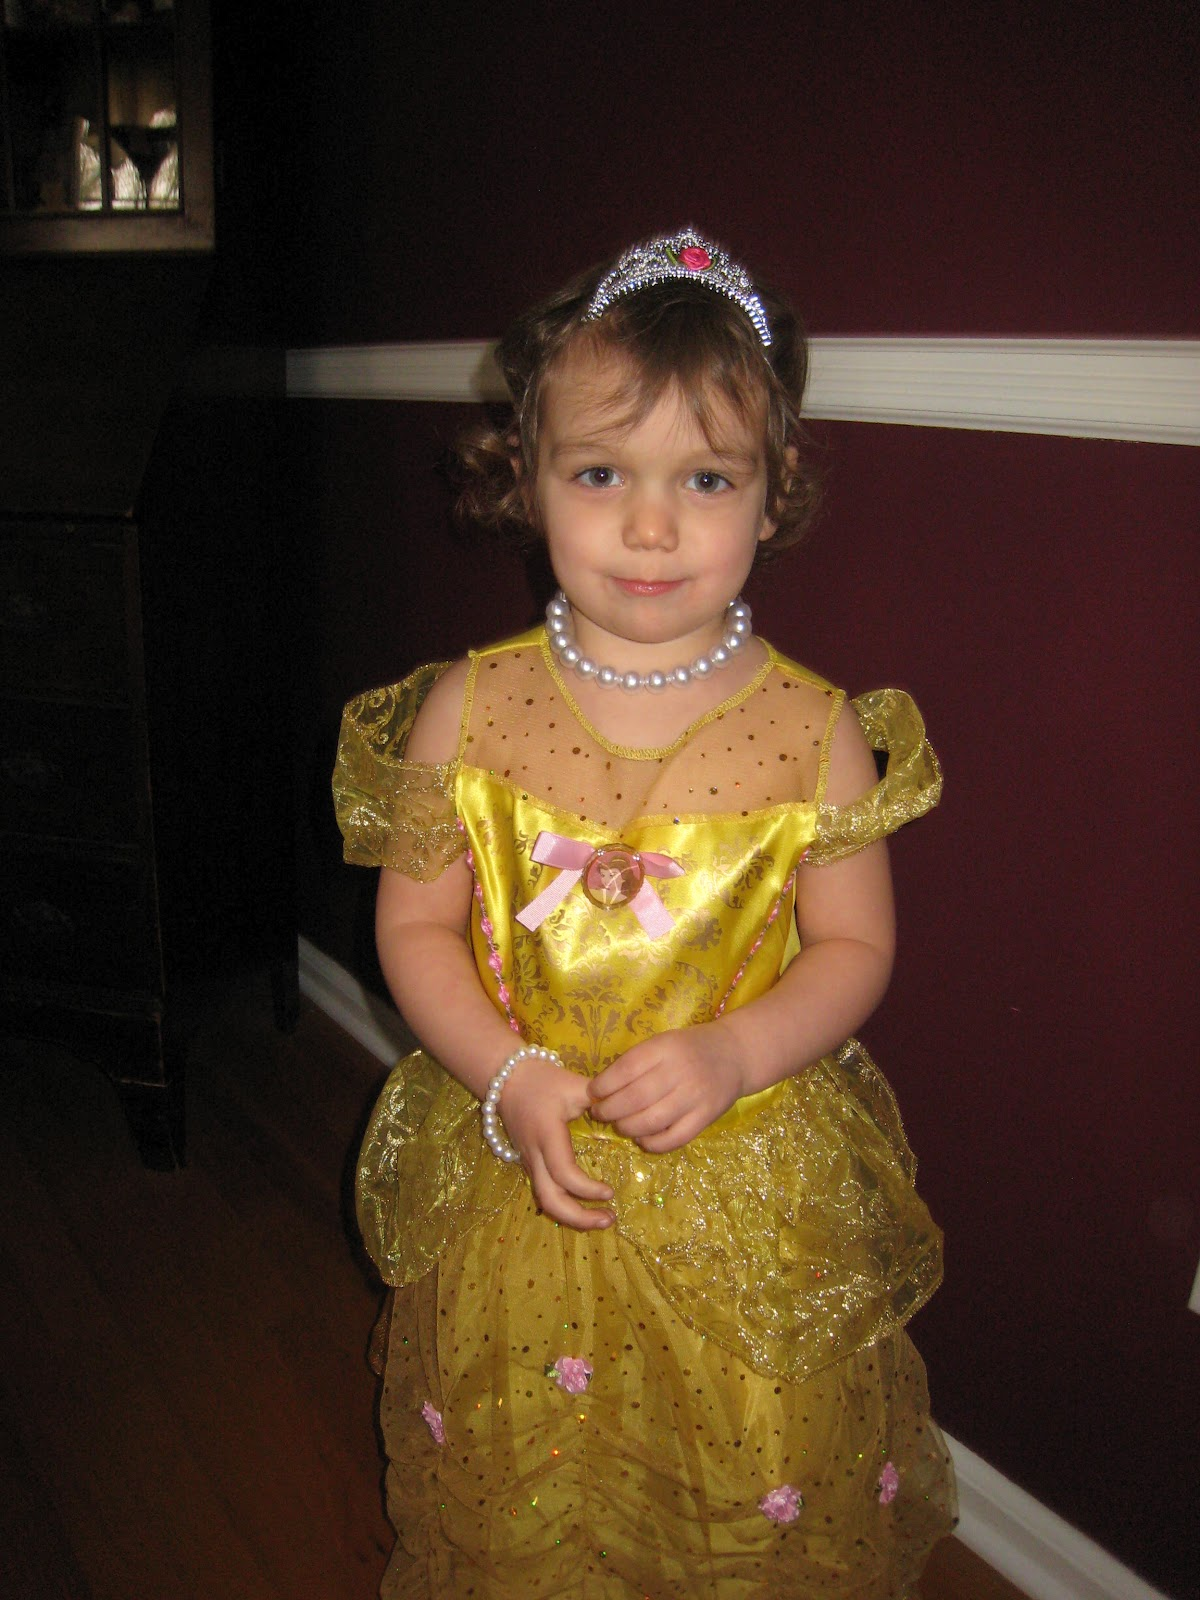 well my daughters all time favorite is beauty and the beast and i am happy to report that wholesale halloween costumes had several belle costumes for me